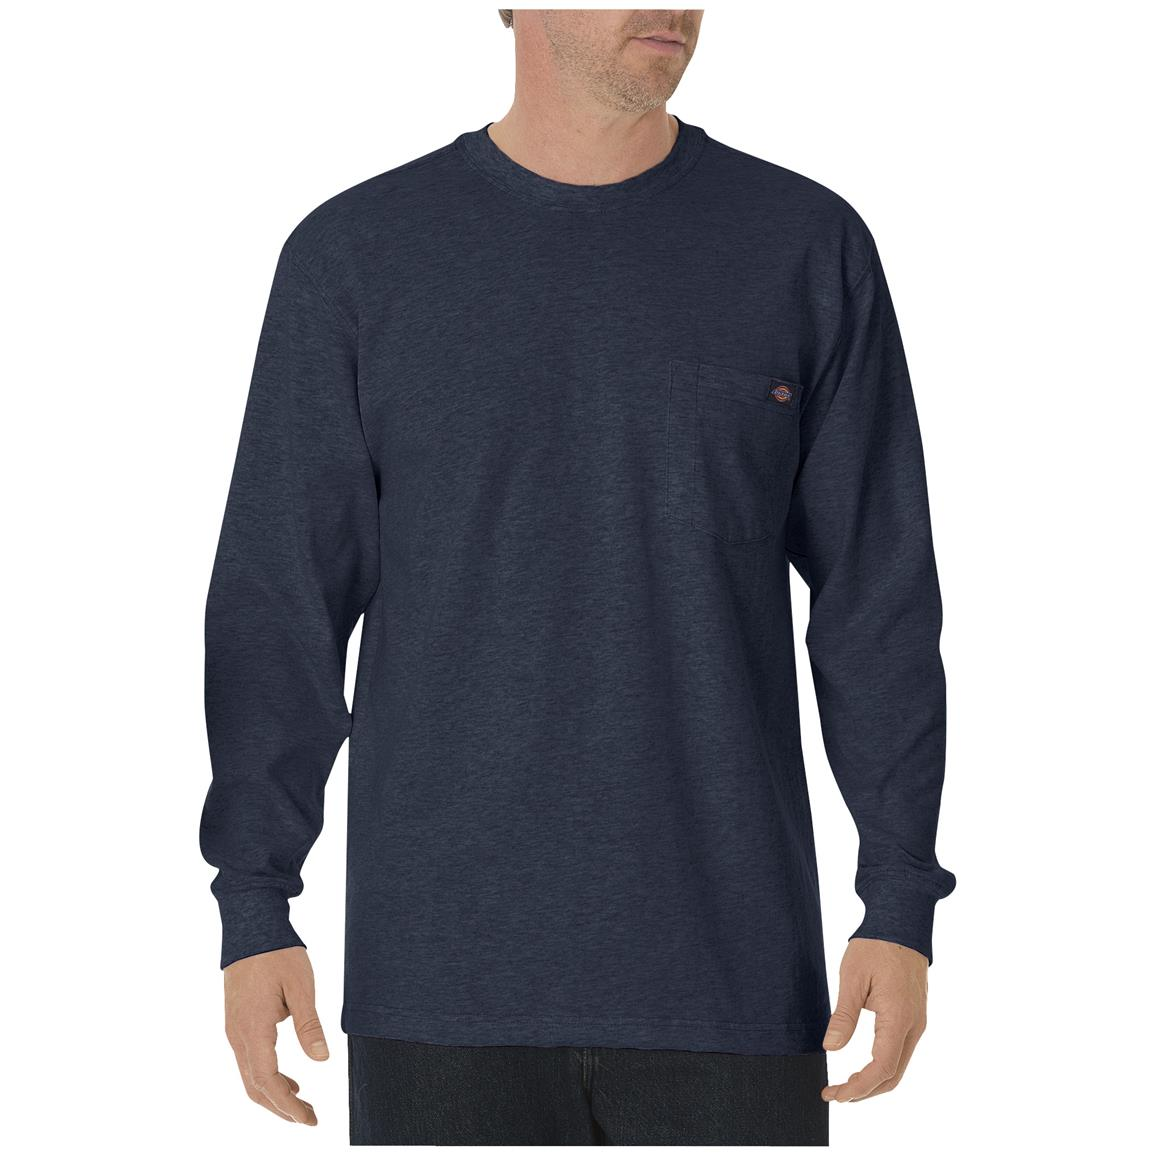 Dickies® Long-sleeved Heavyweight Crew Neck T-shirt, Dark Navy